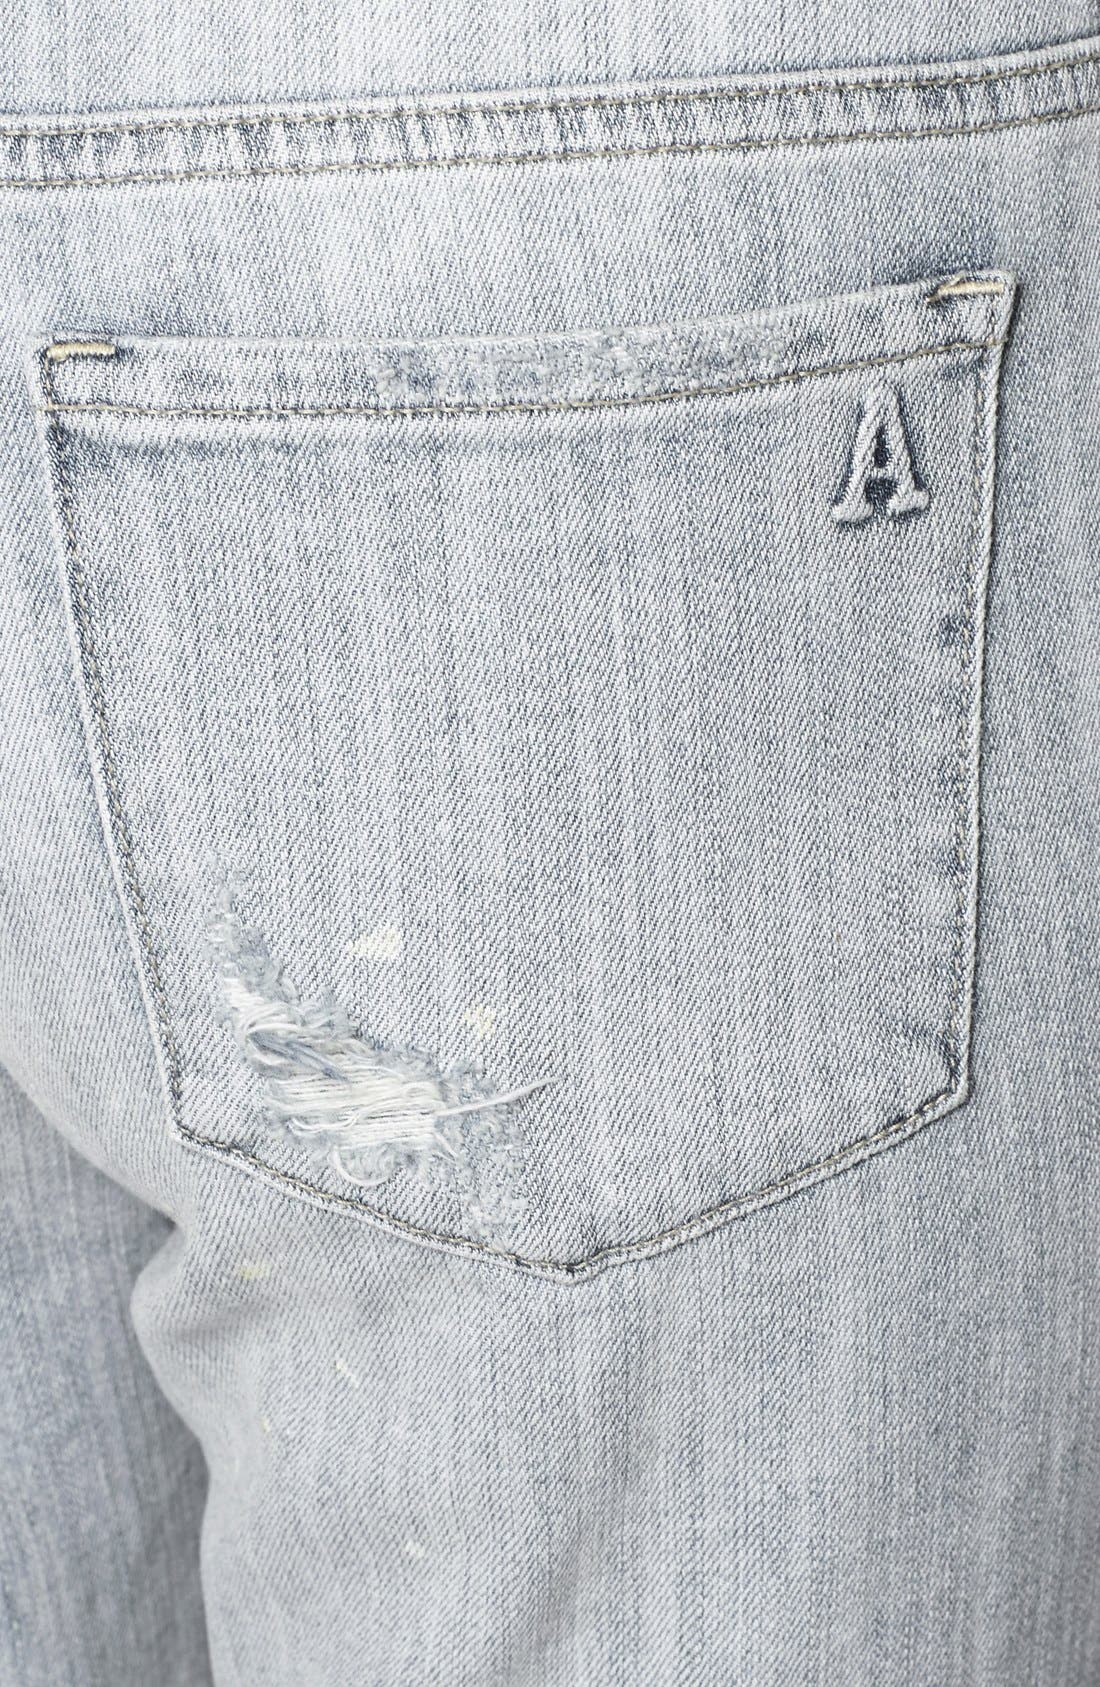 ARTICLES OF SOCIETY,                             'Cindy' Distressed Girlfriend Jeans,                             Alternate thumbnail 3, color,                             400